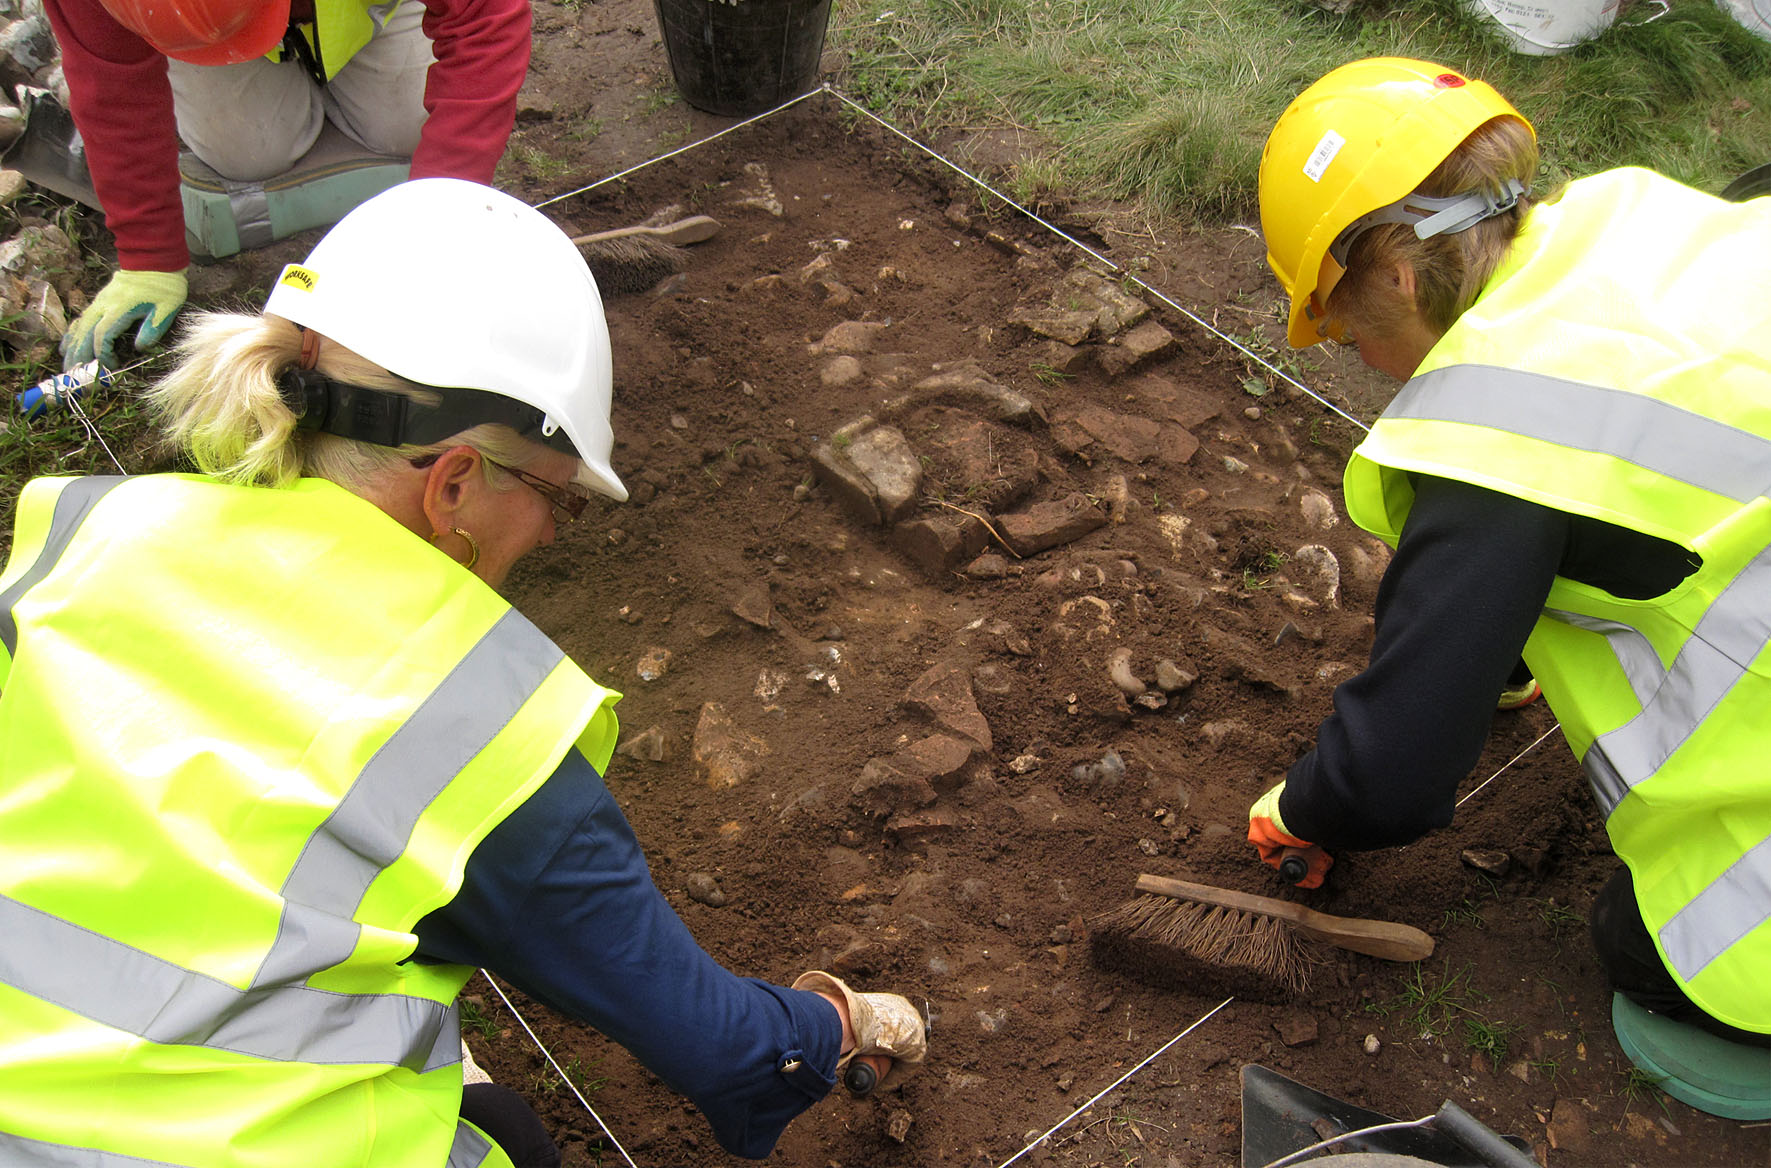 Hopton Church Community Dig